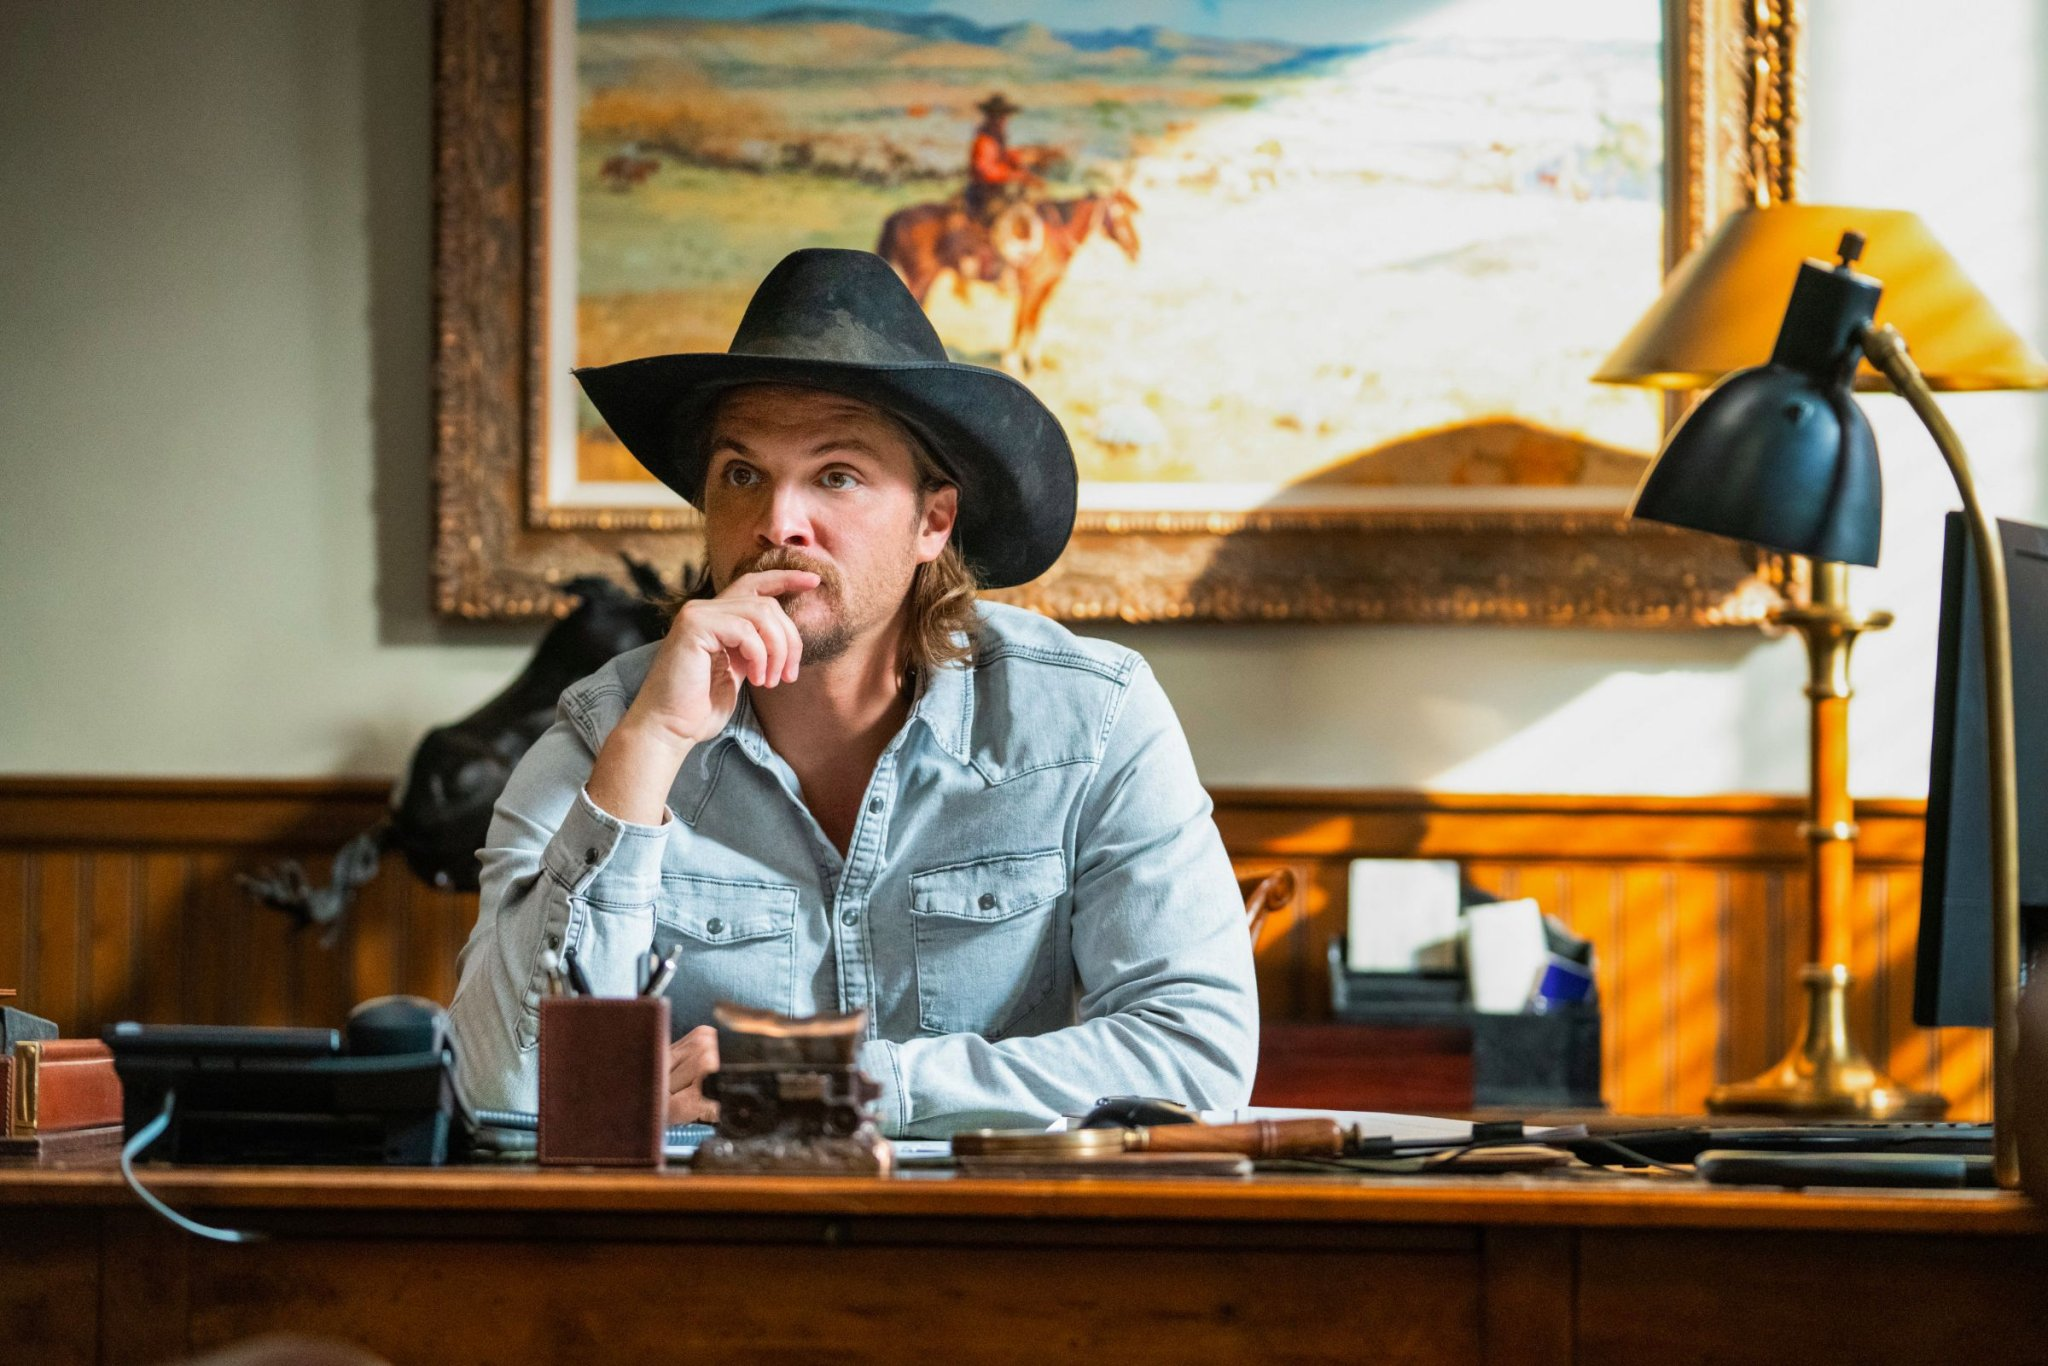 We've Rounded Up Everything You Need to Know About Yellowstone Season 4, Including the First Look at Finn Little